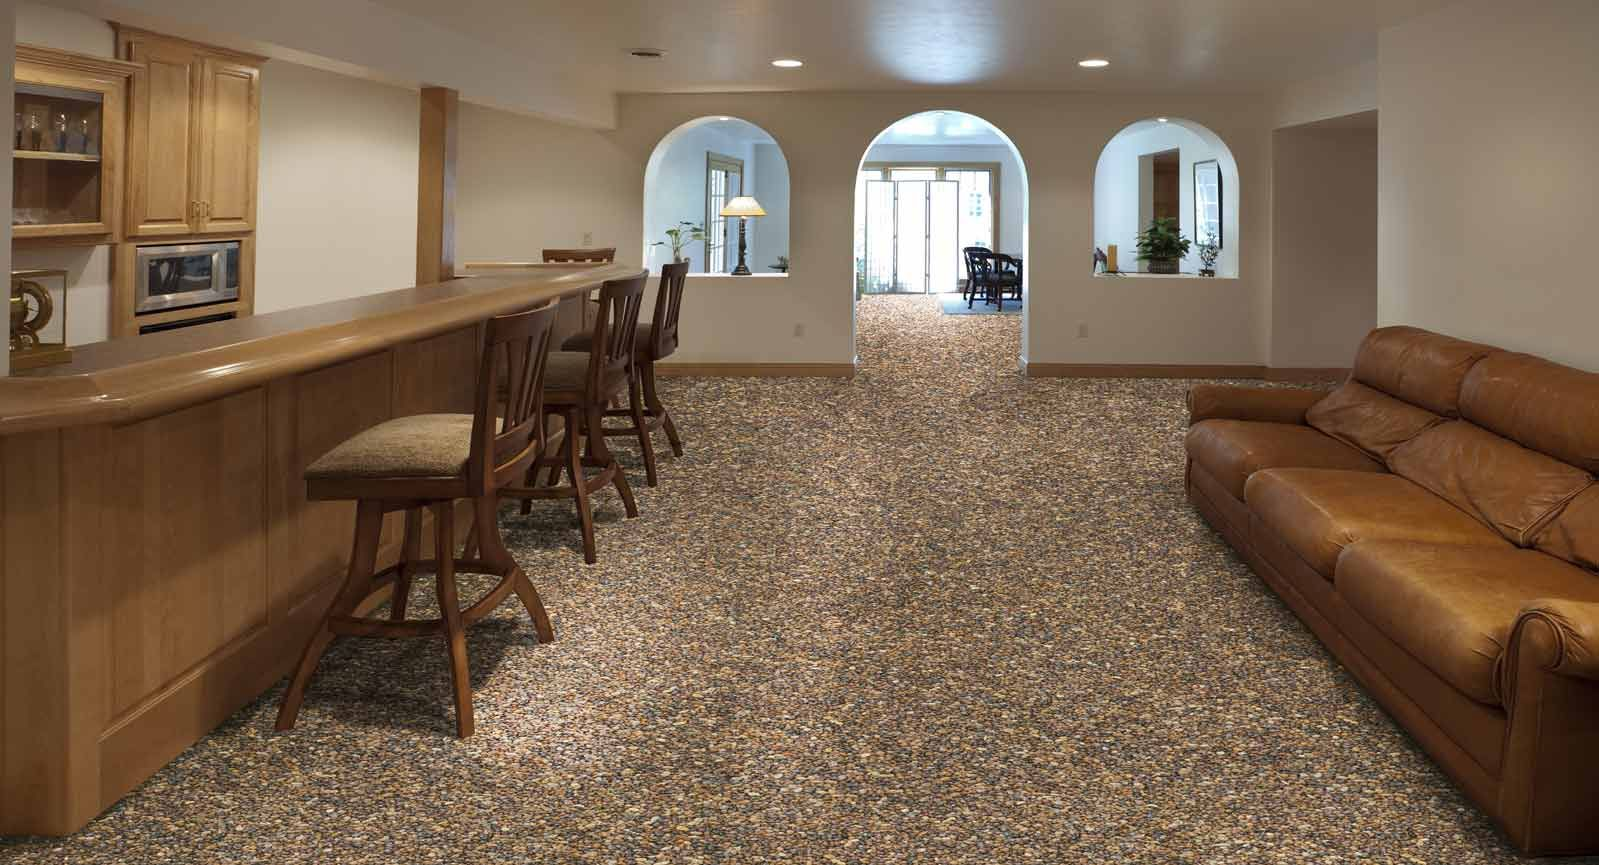 Basement flooring options for wet basements - Rubber Flooring Basement Moisture Basements Are An Important Part Of Most Homes They Are Usually Used As Space At Which Essential Utility Items Such As